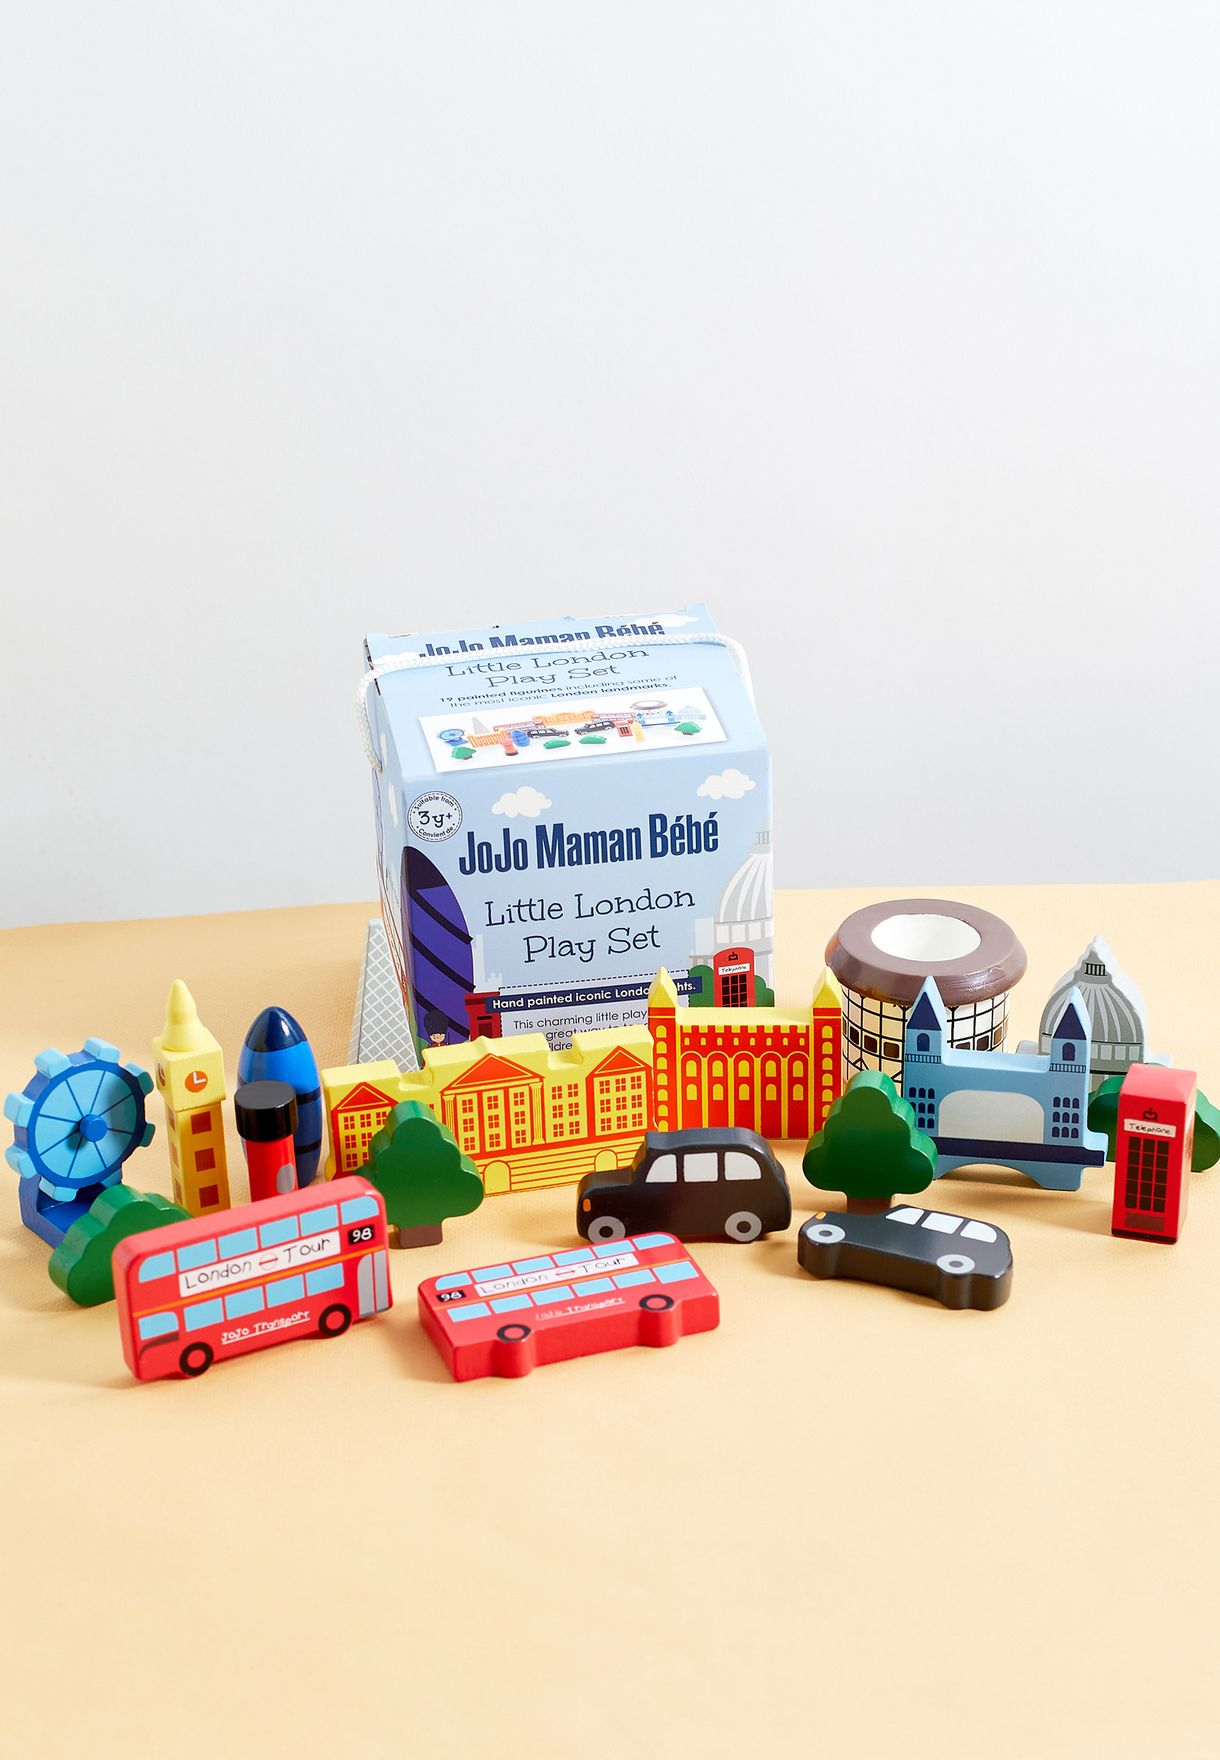 Little London Play Set